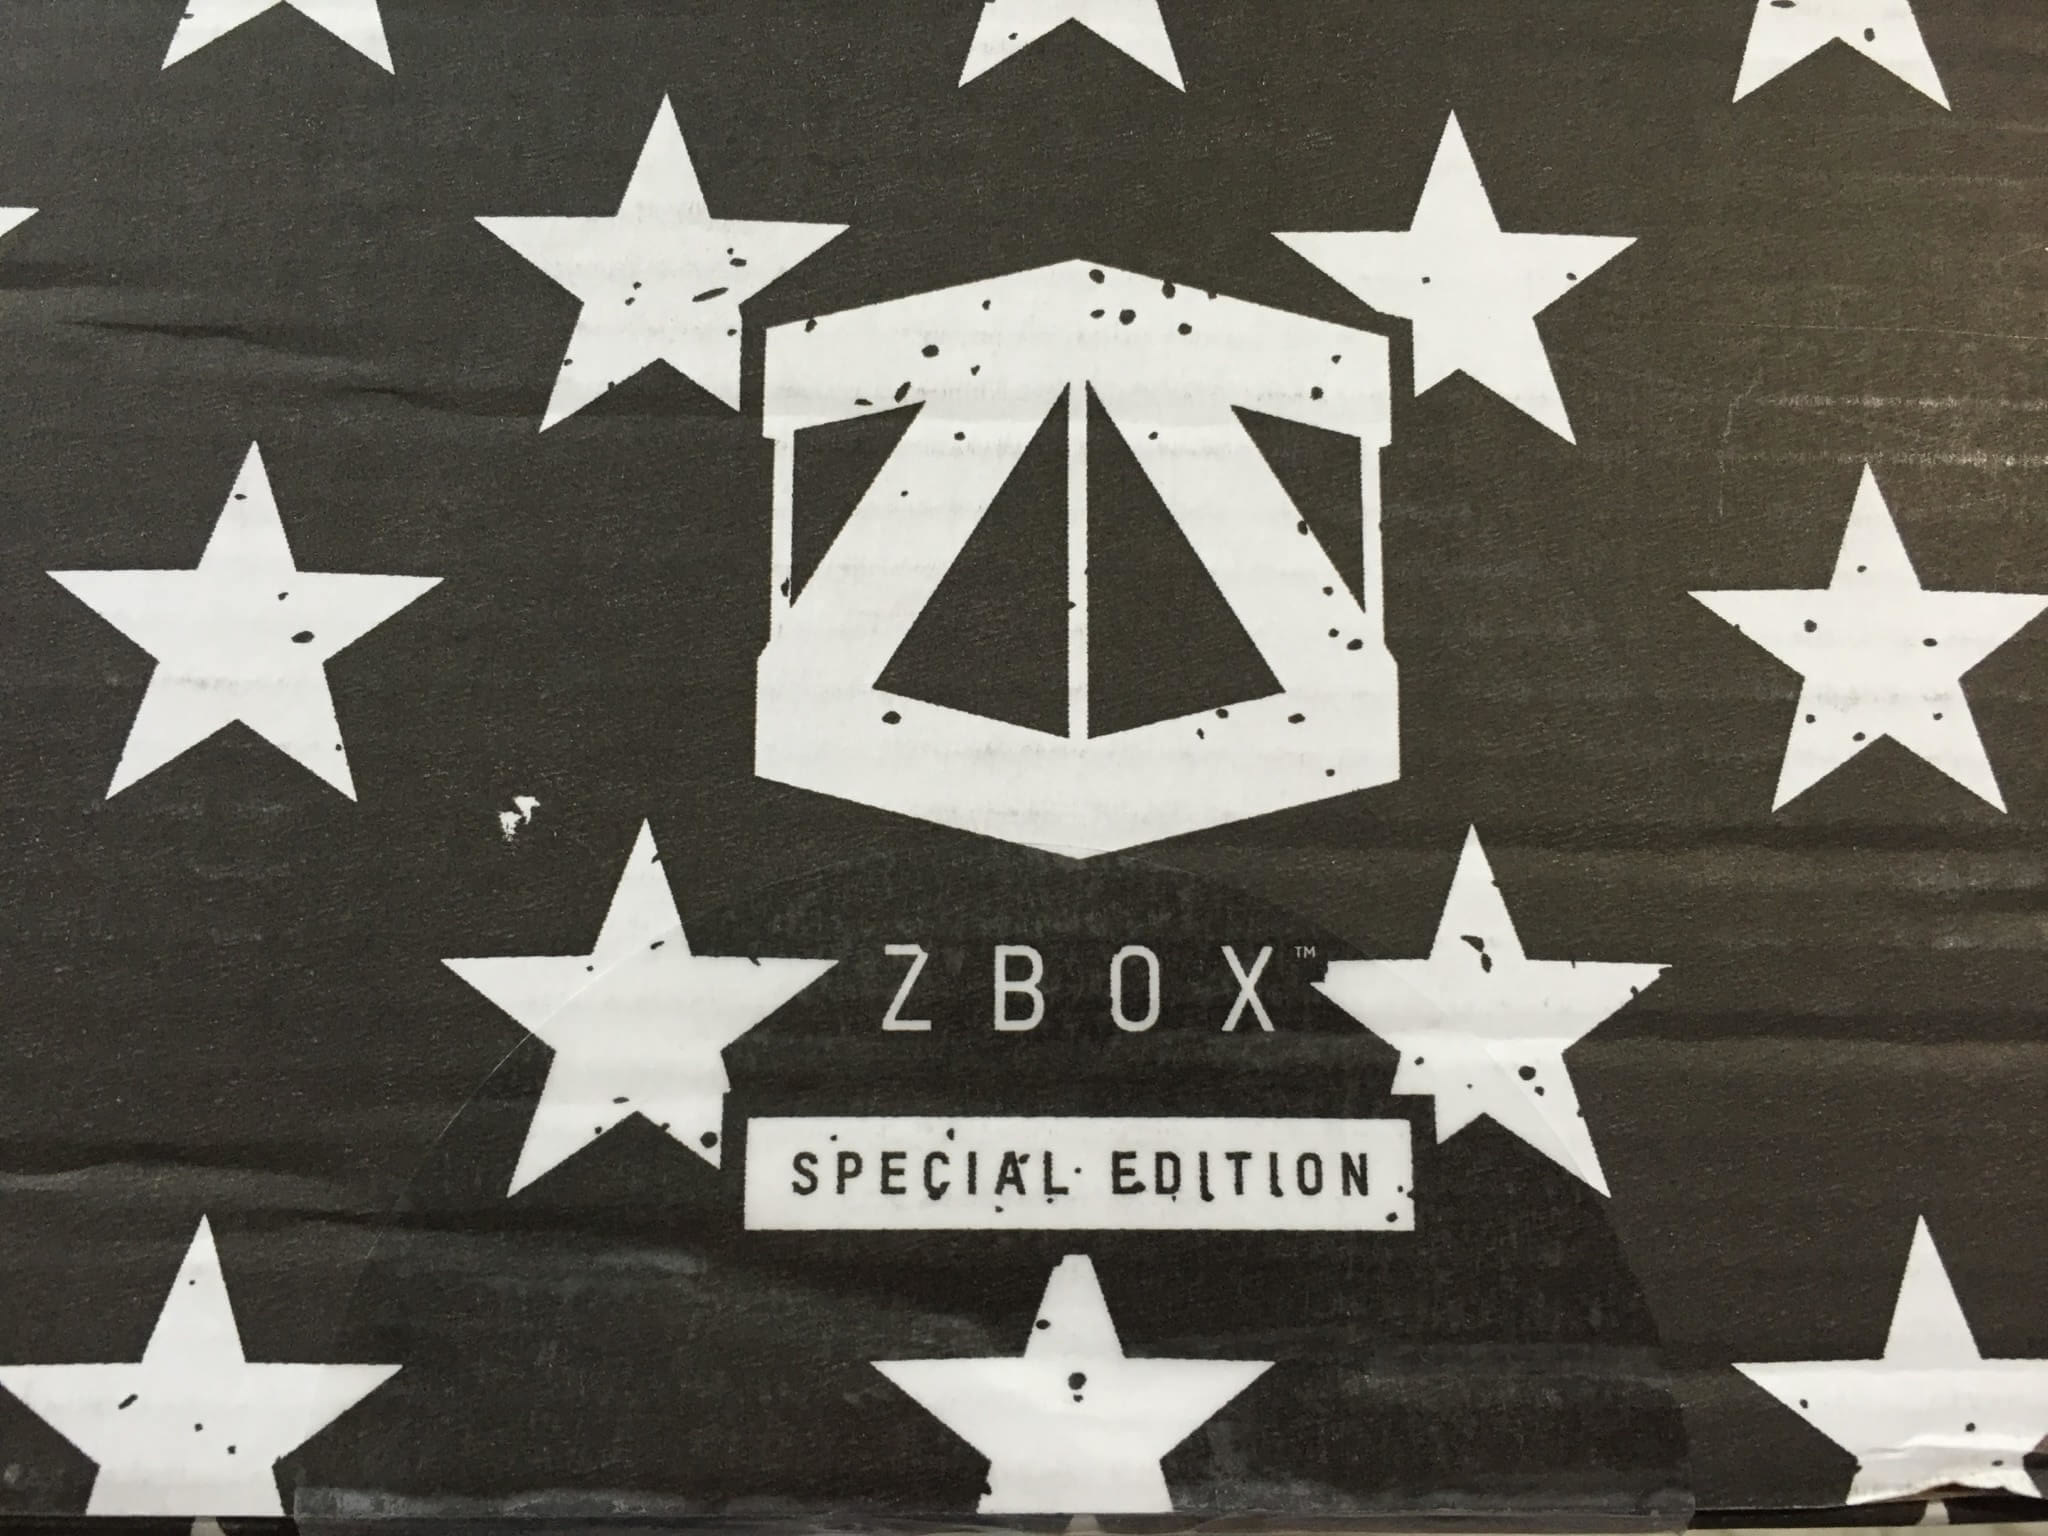 ZBOX Limited Edition Civil War Captain America Box Review